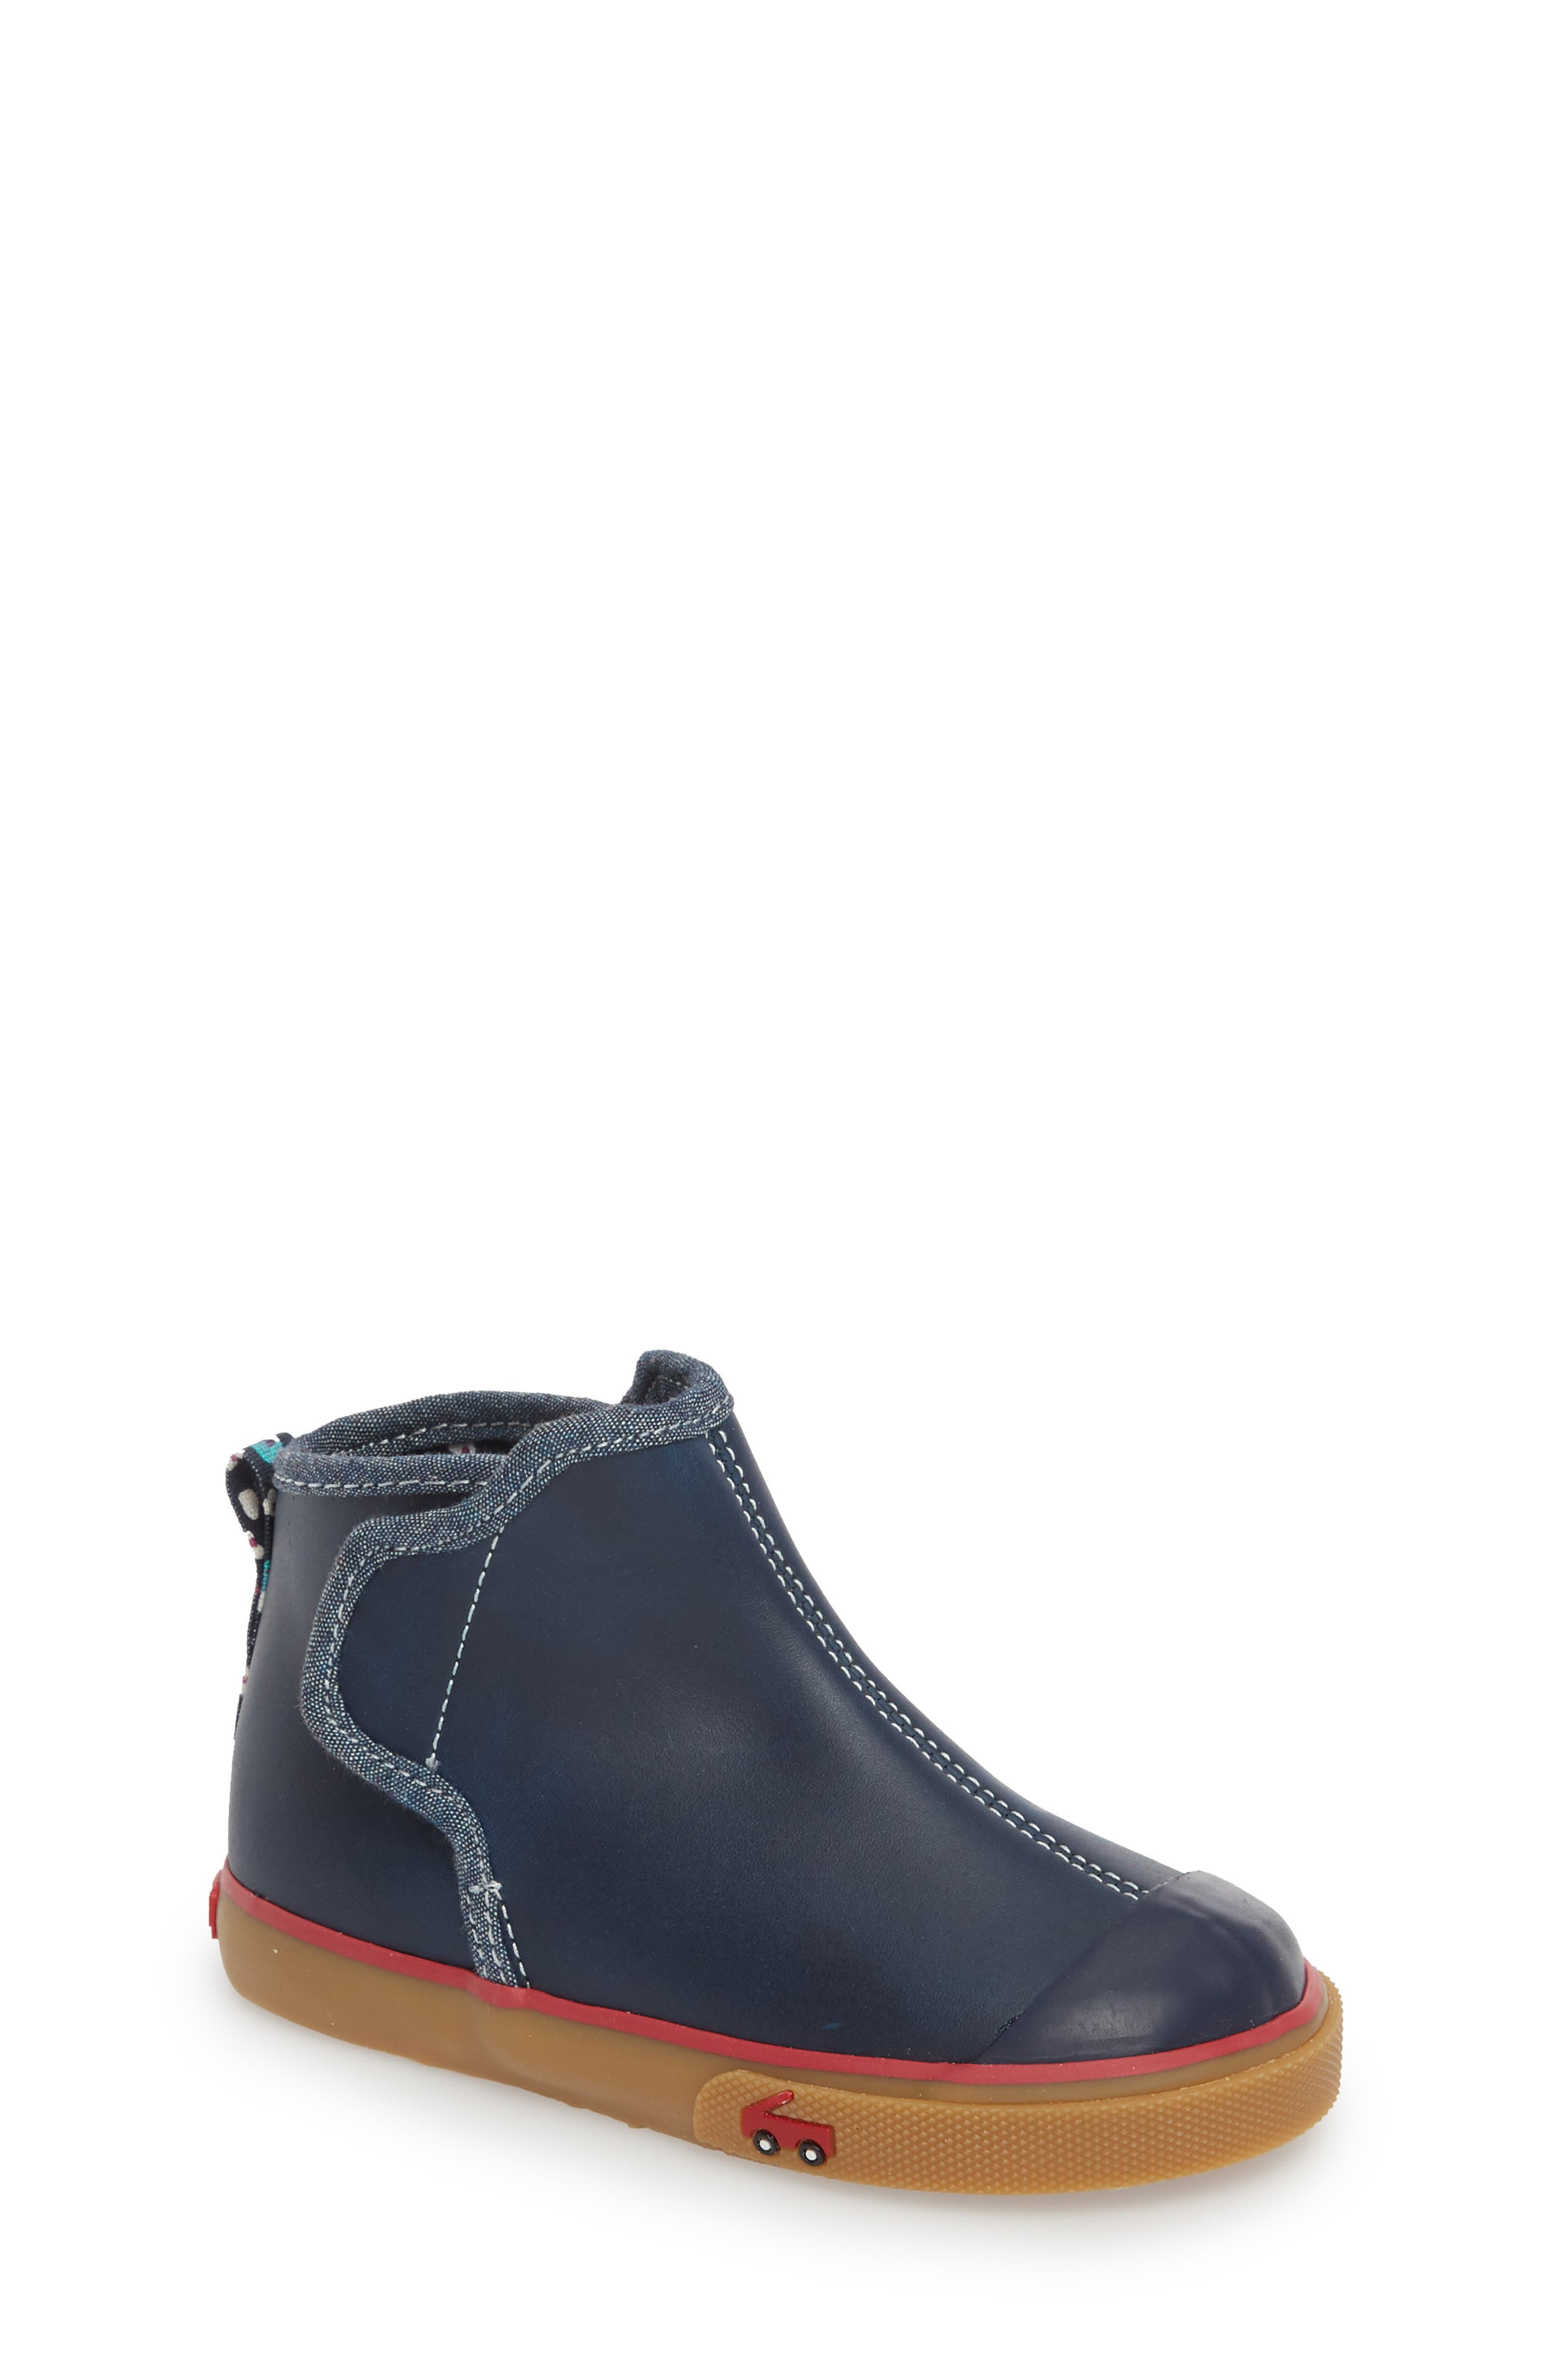 Mia Boot,                         Main,                         color, NAVY LEATHER